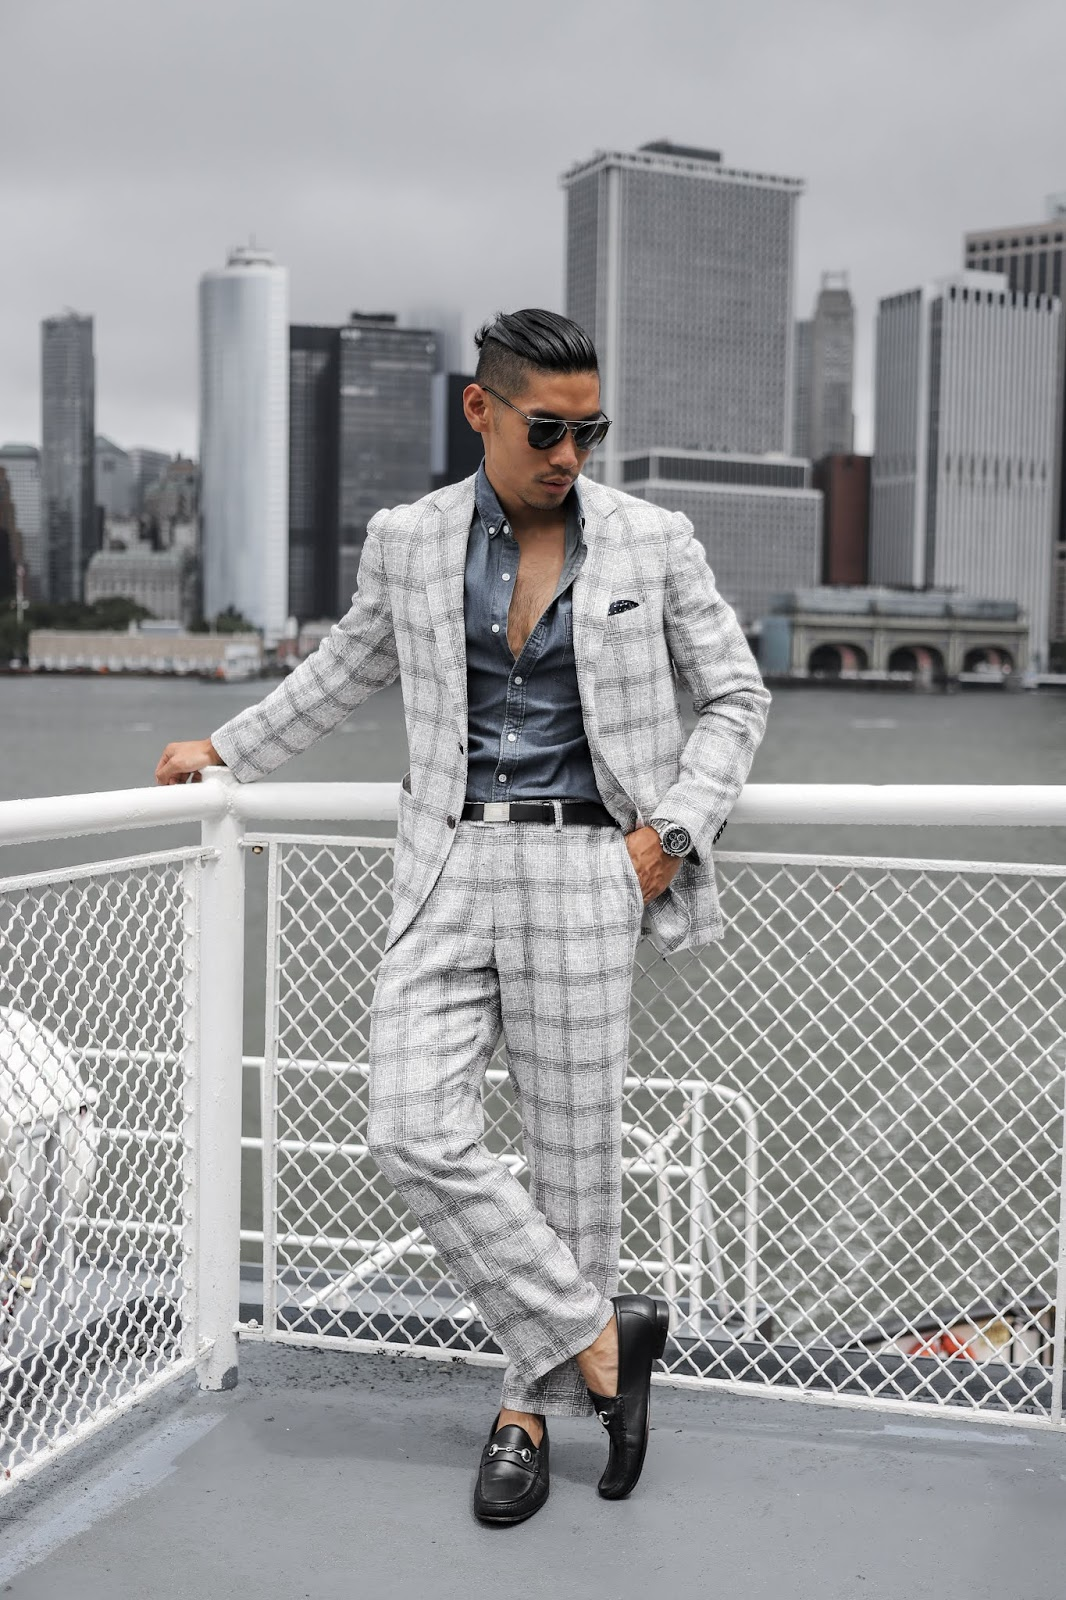 Leo Chan wearing Windowpane Suit to Polo Match | Asian Model and Blogger